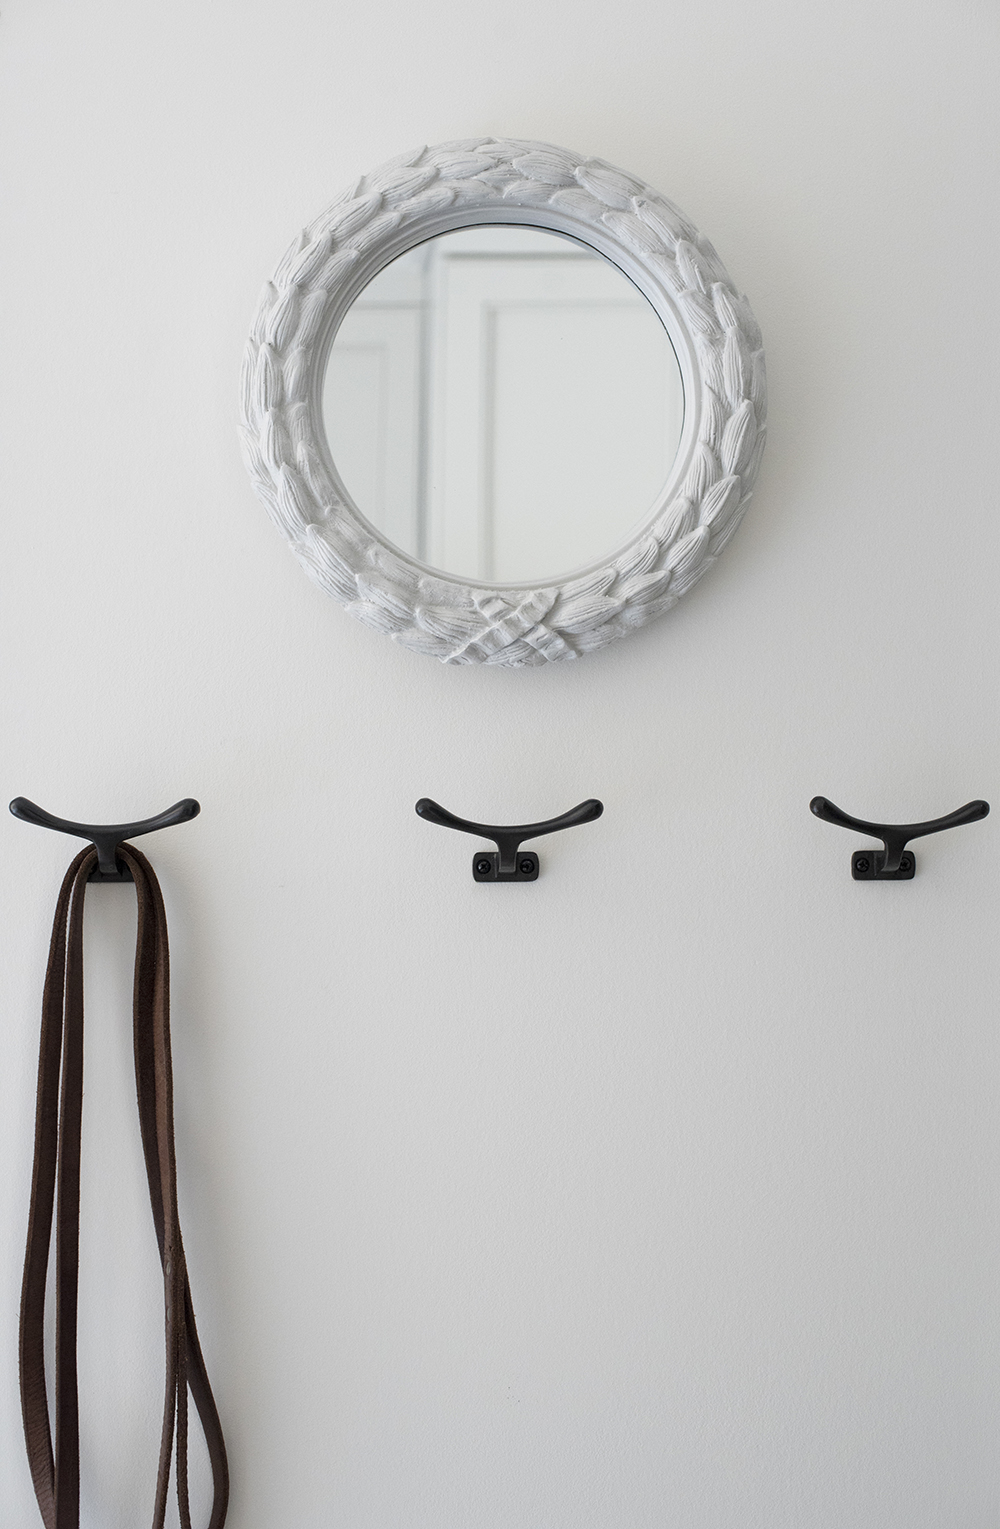 Amazon Finds : Wall Mirrors - roomfortuesday.com